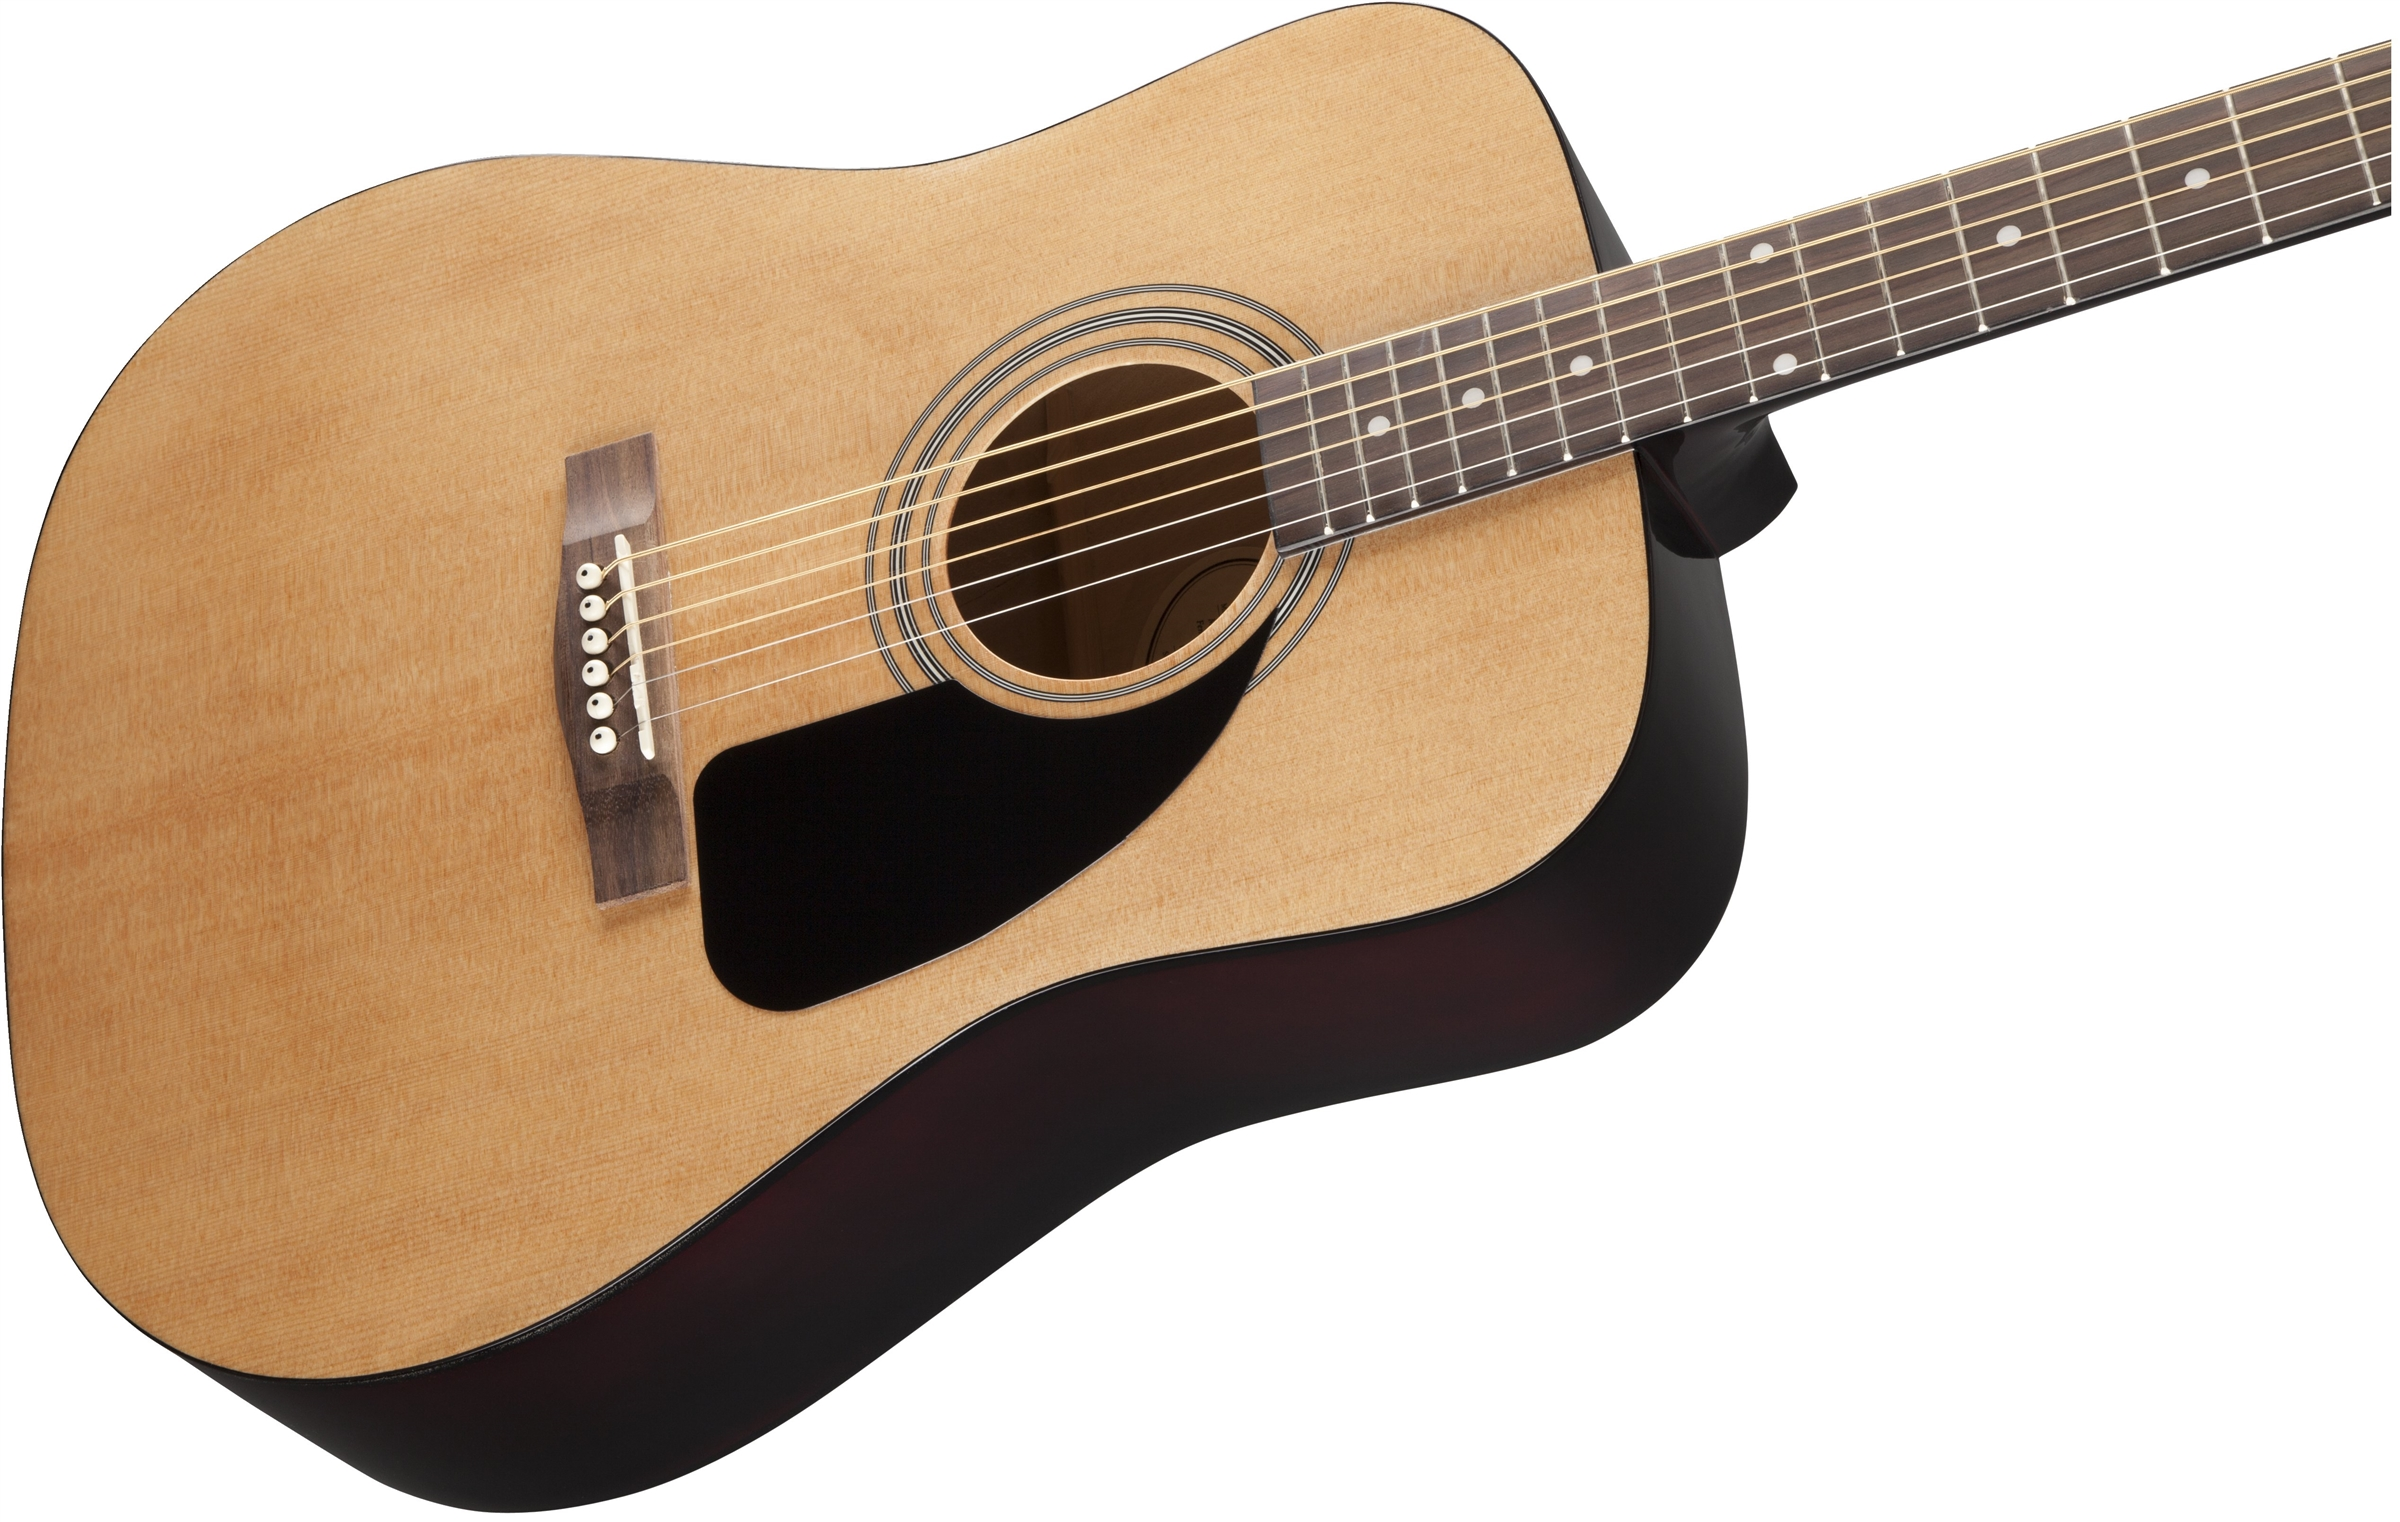 c32be2ec65 FA-100 Acoustic Pack. Model #: 0950815100. Tap to expand